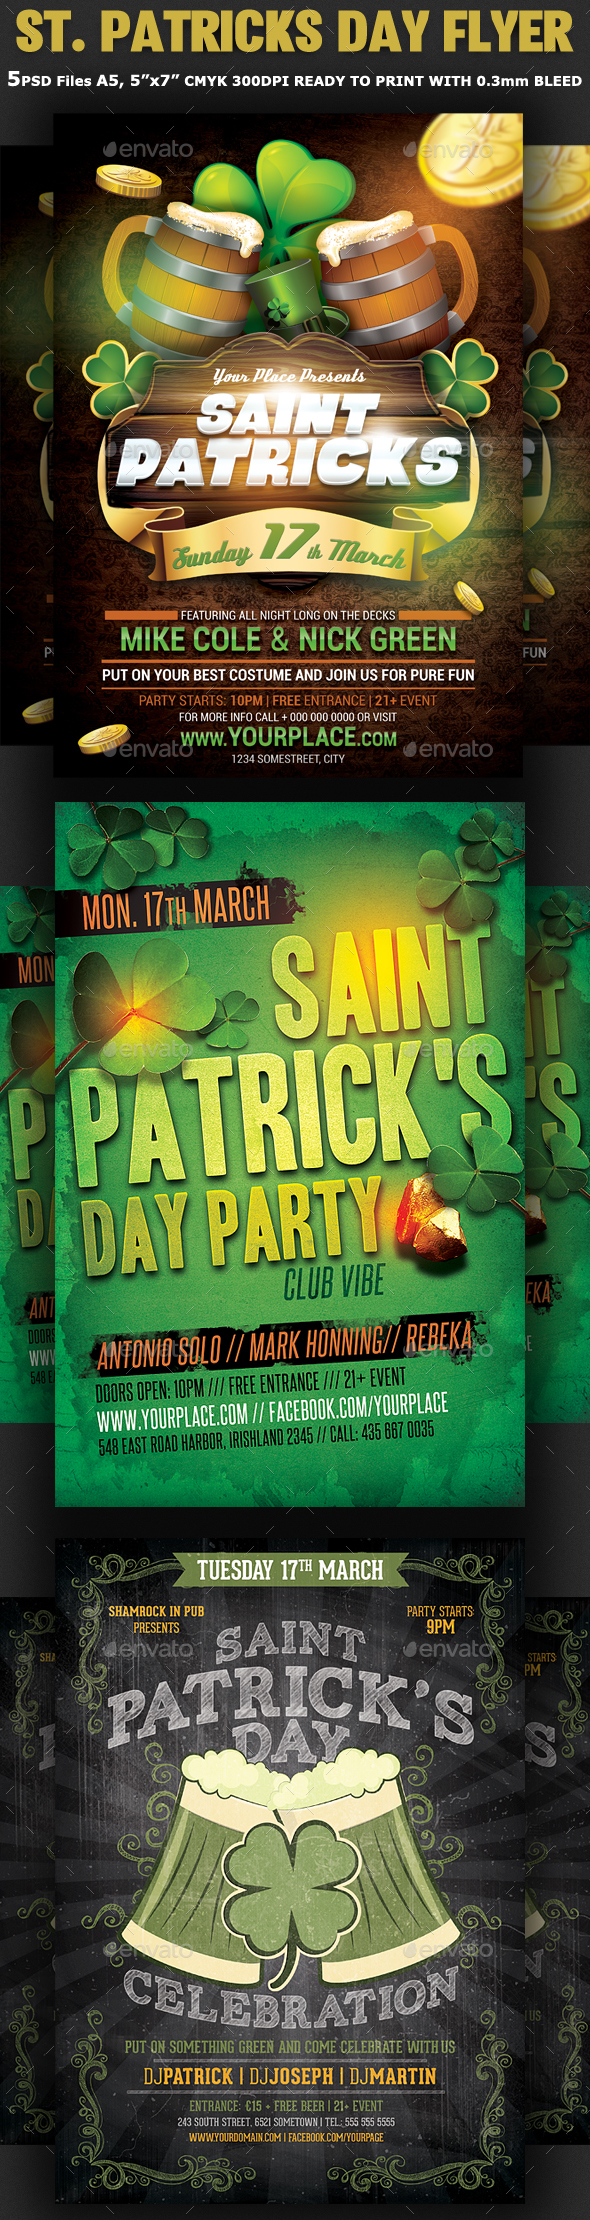 St. Patricks Day Flyer Bundle 3in1 - Clubs & Parties Events